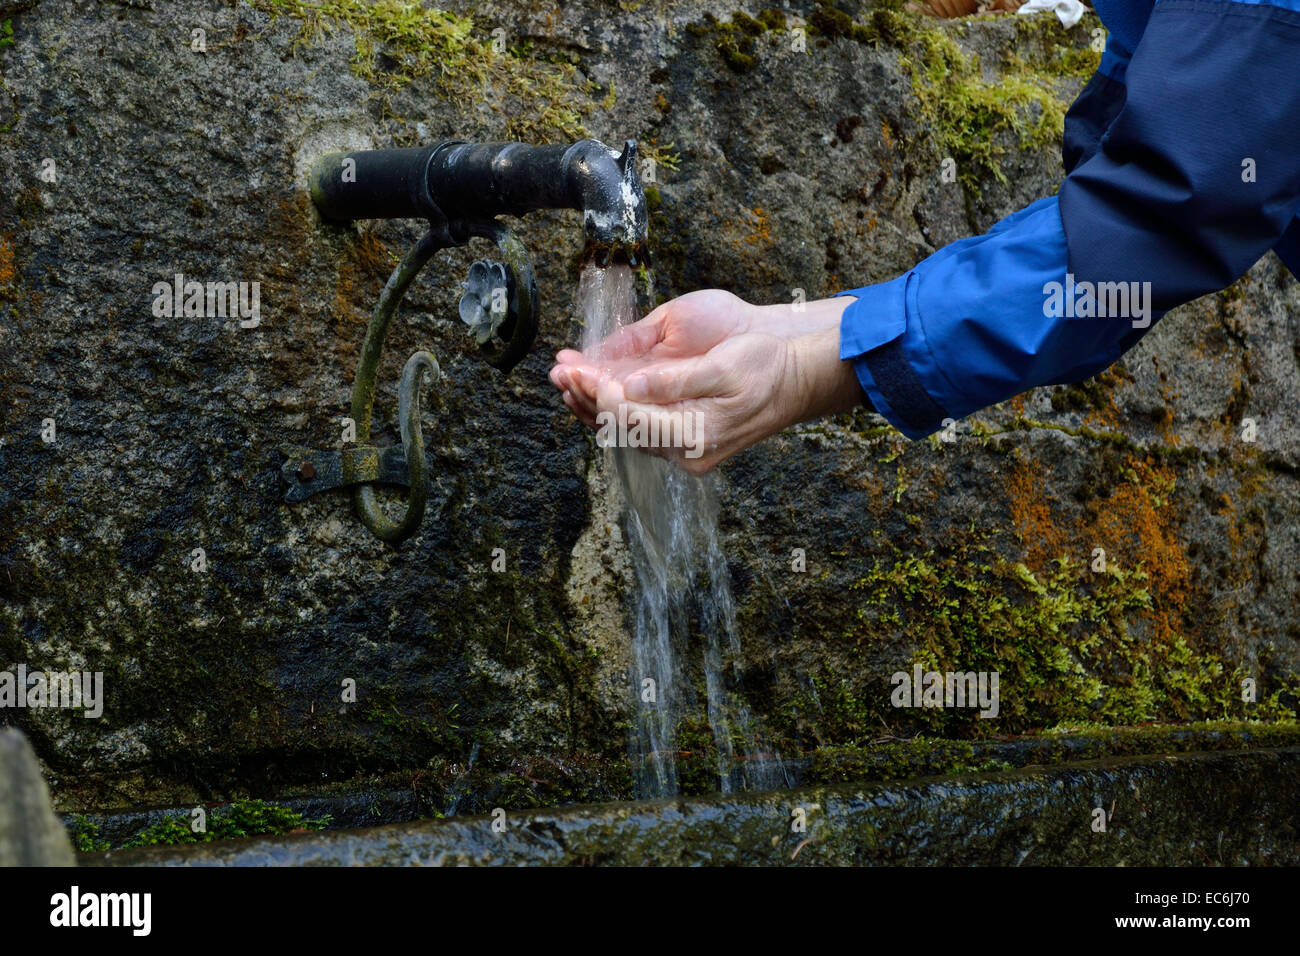 Person refreshes itself at a water source - Stock Image